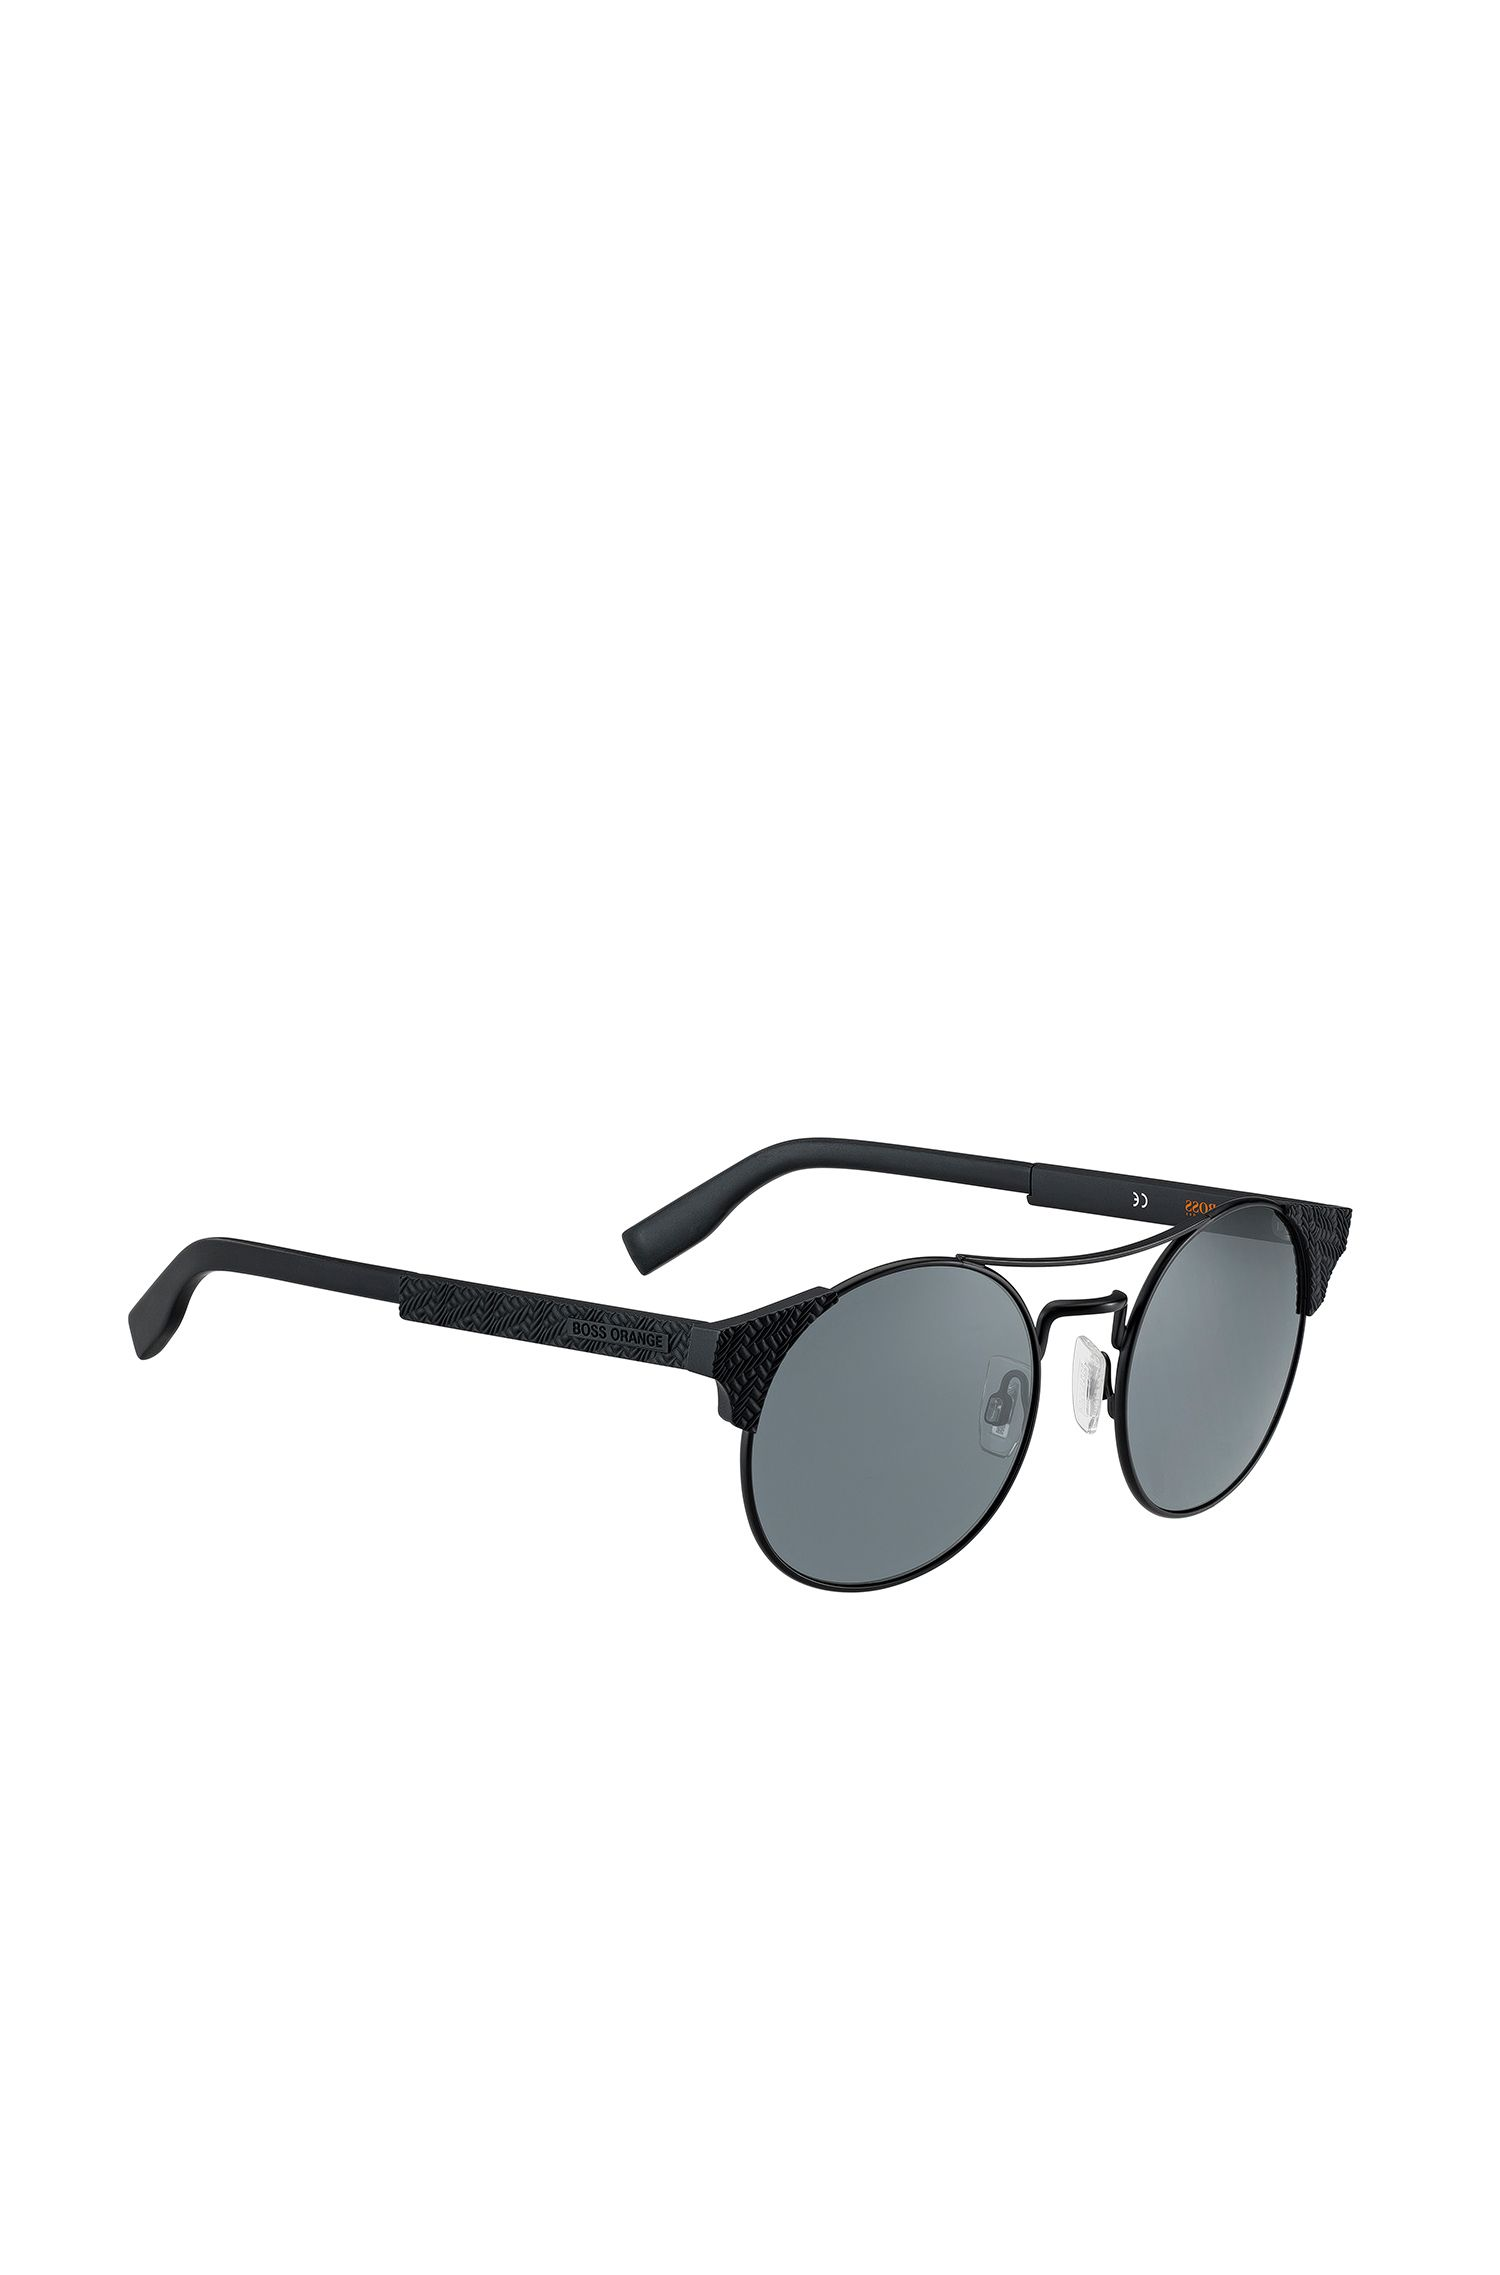 Black panto sunglasses with textured temples